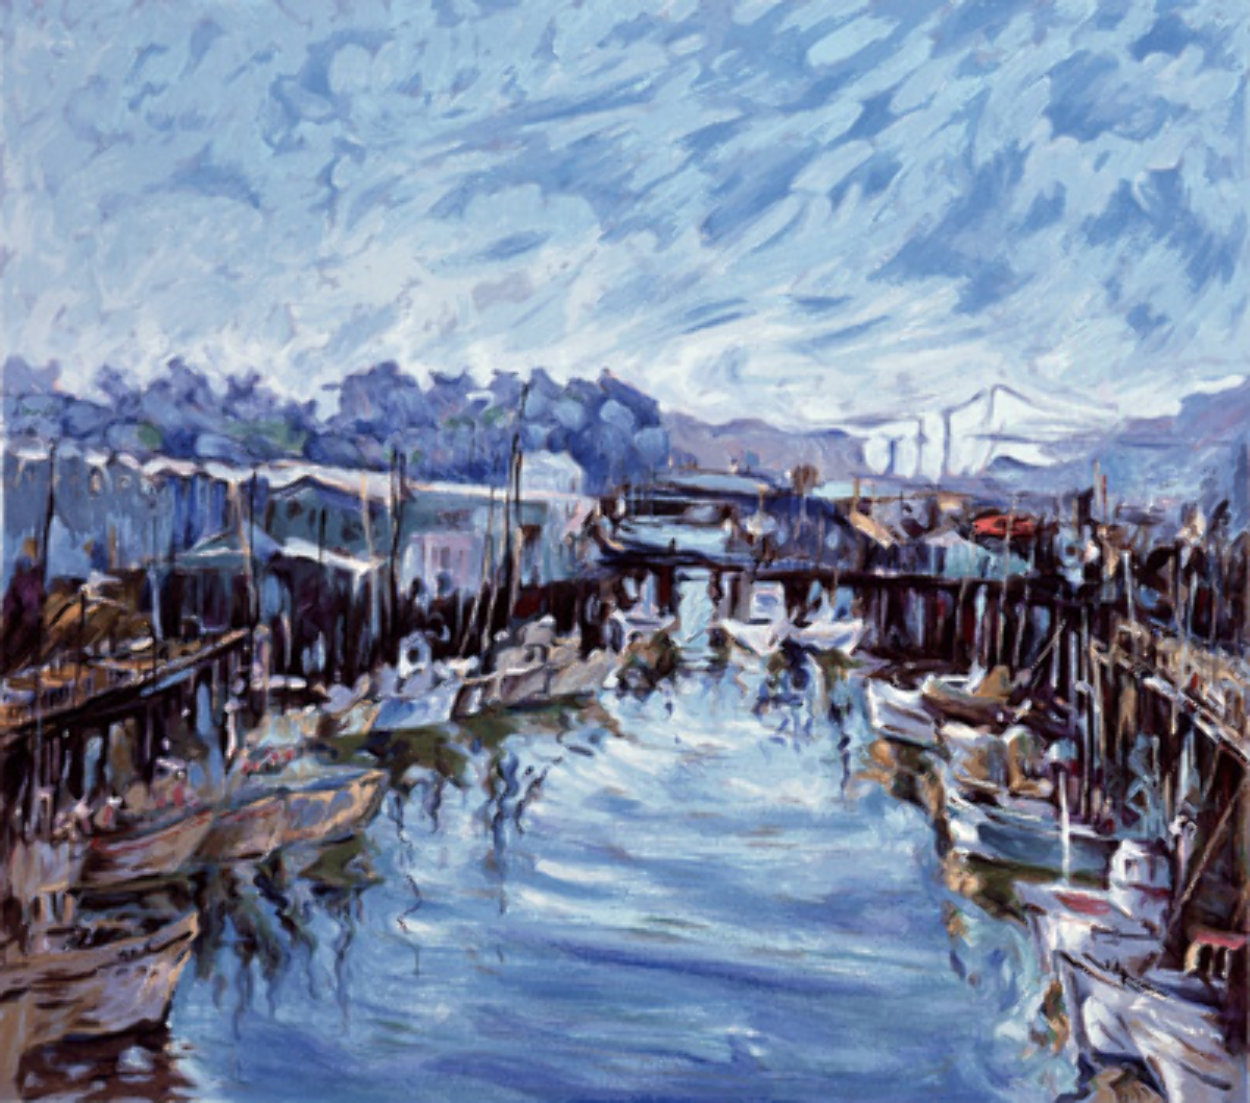 Fisherman's Wharf, San Francisco, 1976  AP  Limited Edition Print by Marco Sassone